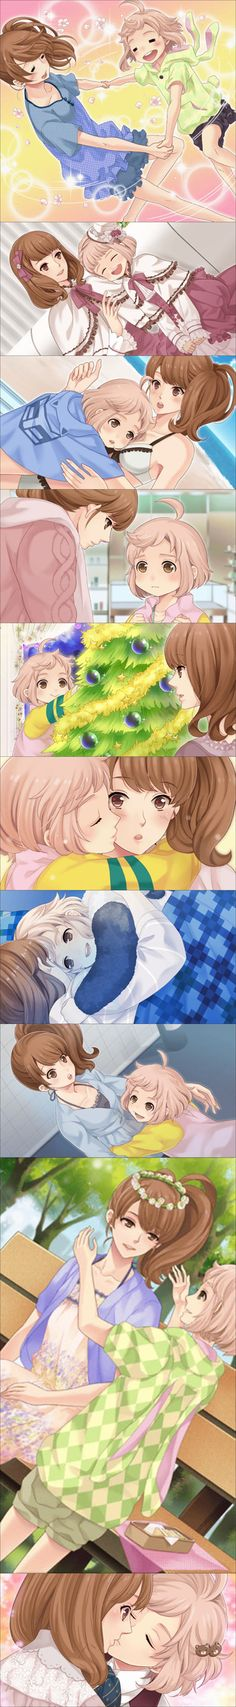 Brothers Conflict - Wataru and Ema THE BEST ENDING IN THE GAME EVEEEEEERR *3*